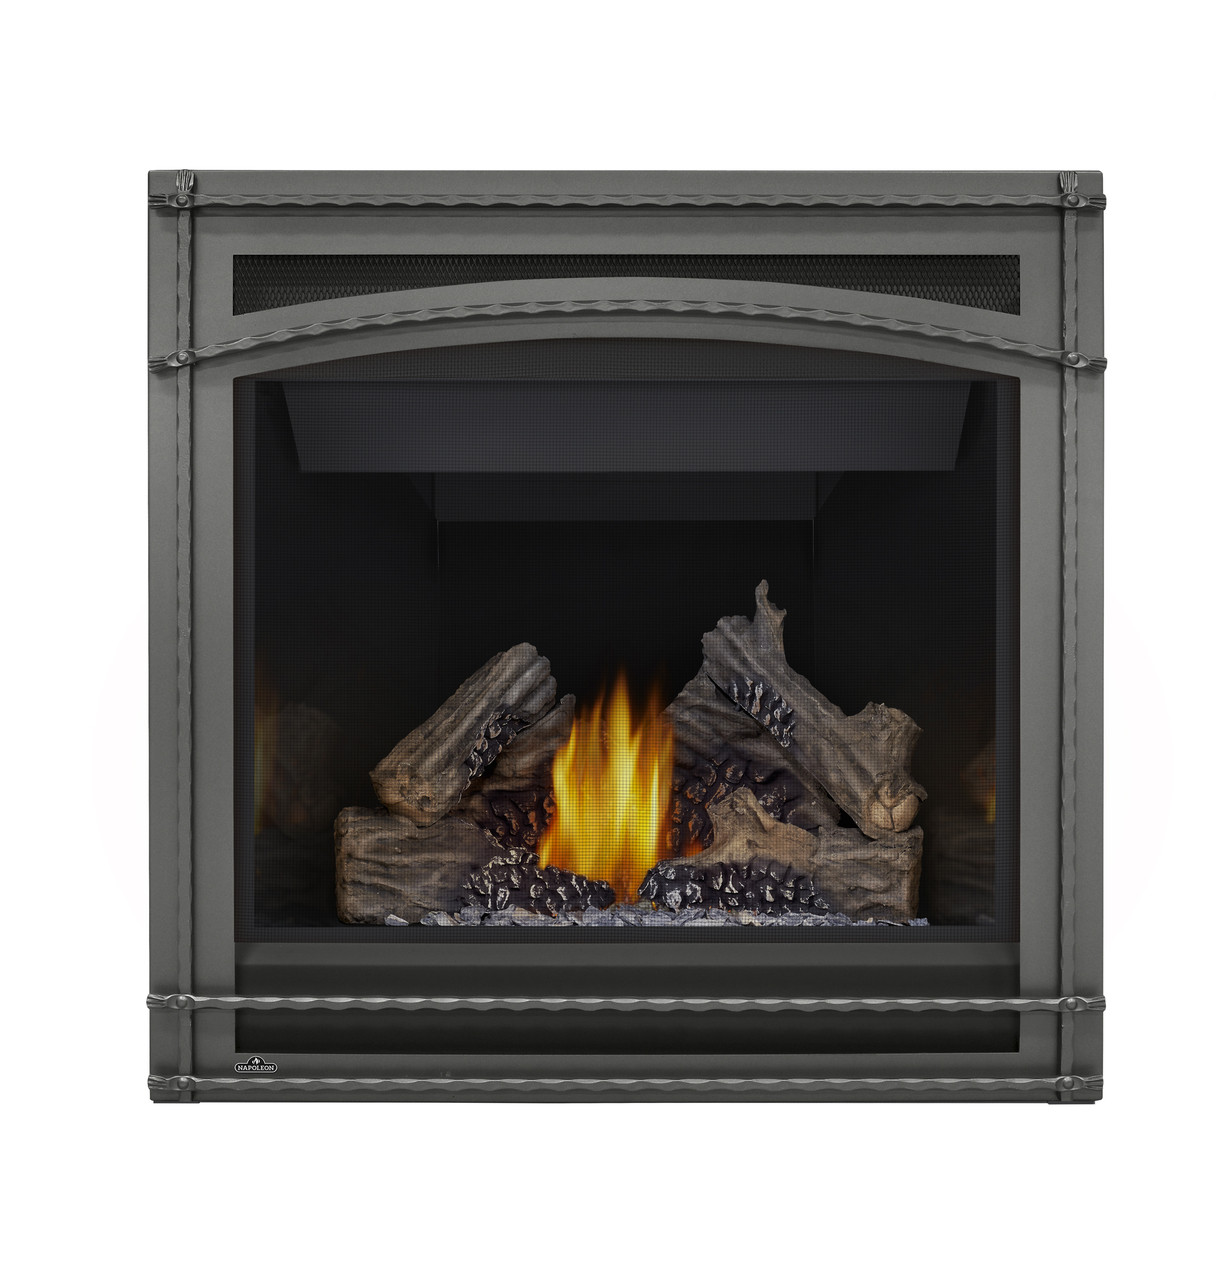 PHAZER Log Set, Wrought Iron Front, MIRRO-FLAME Porcelain Reflective Radiant Panels